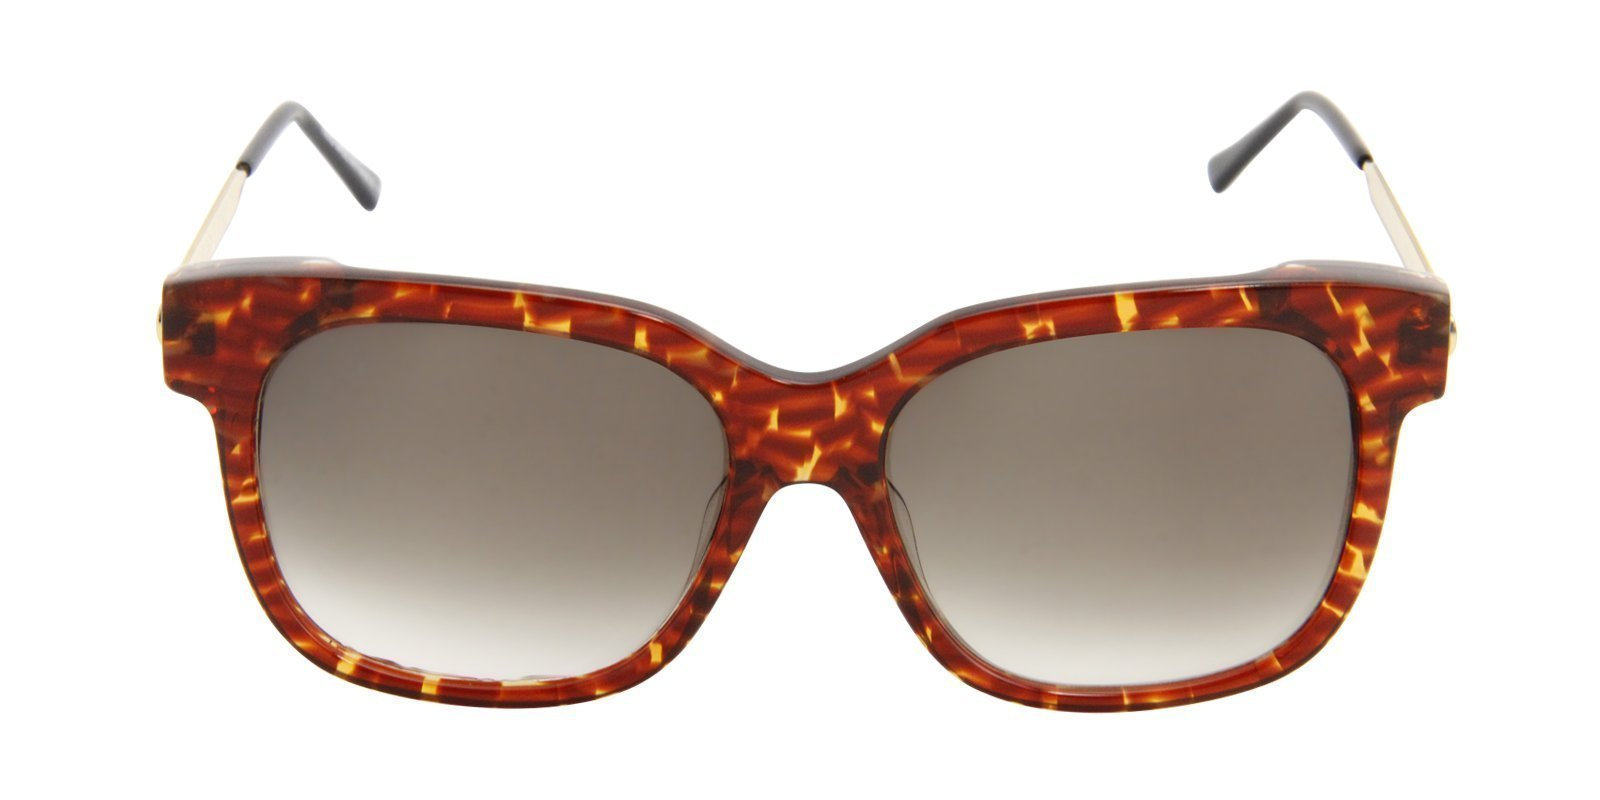 Thierry Lasry - Rapsody Tortoise Rectangular Men, Women Sunglasses - 57mm-Sunglasses-Designer Eyes